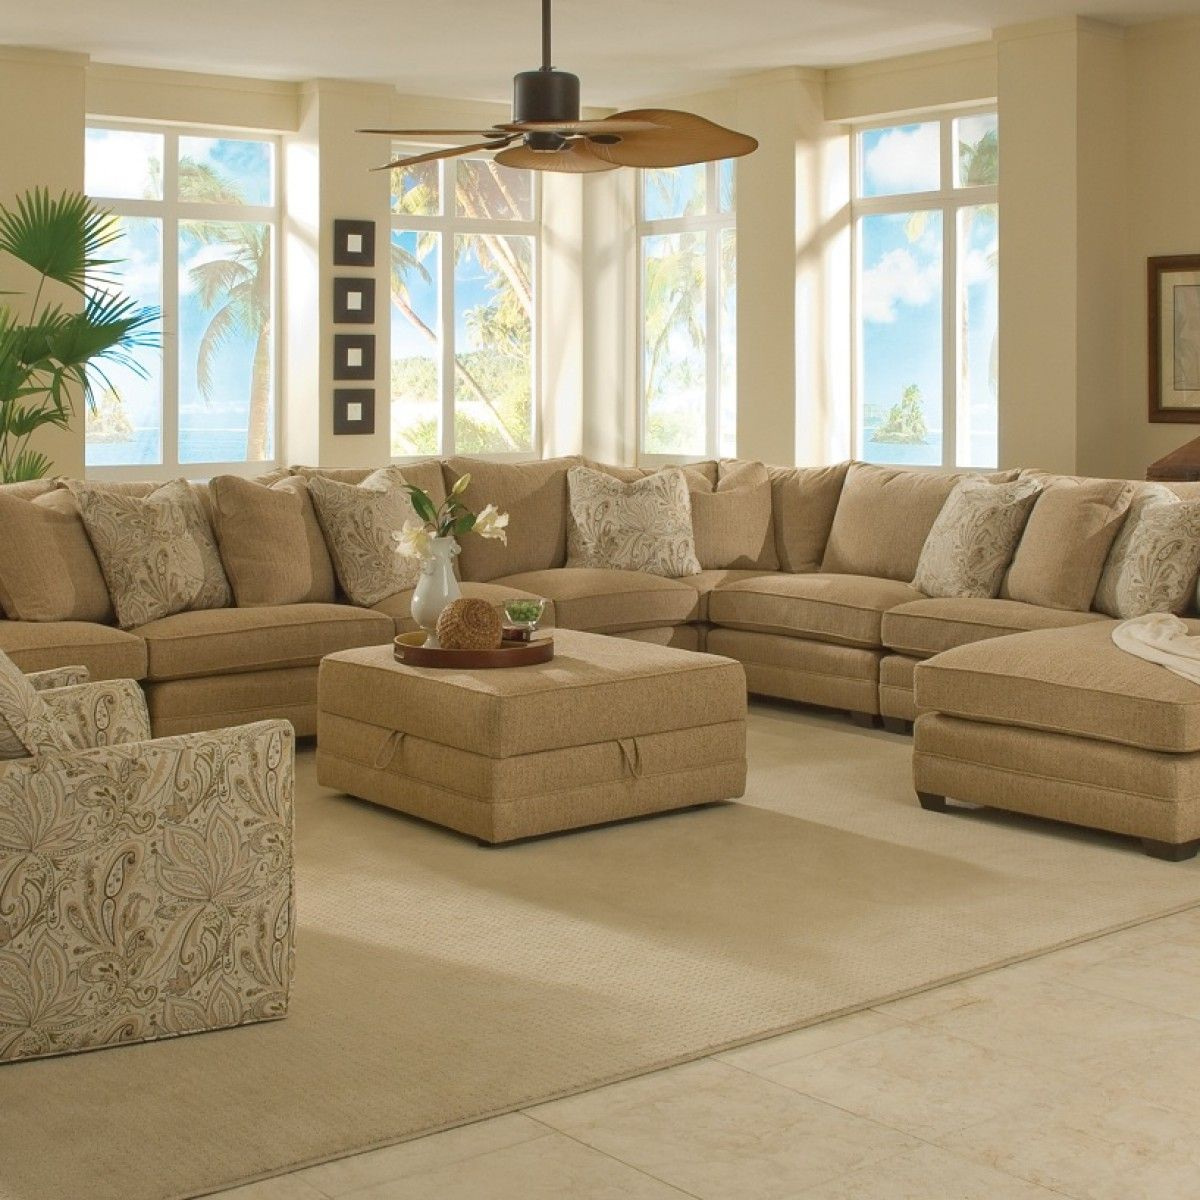 10+ Stunning Sectional Couches Living Room